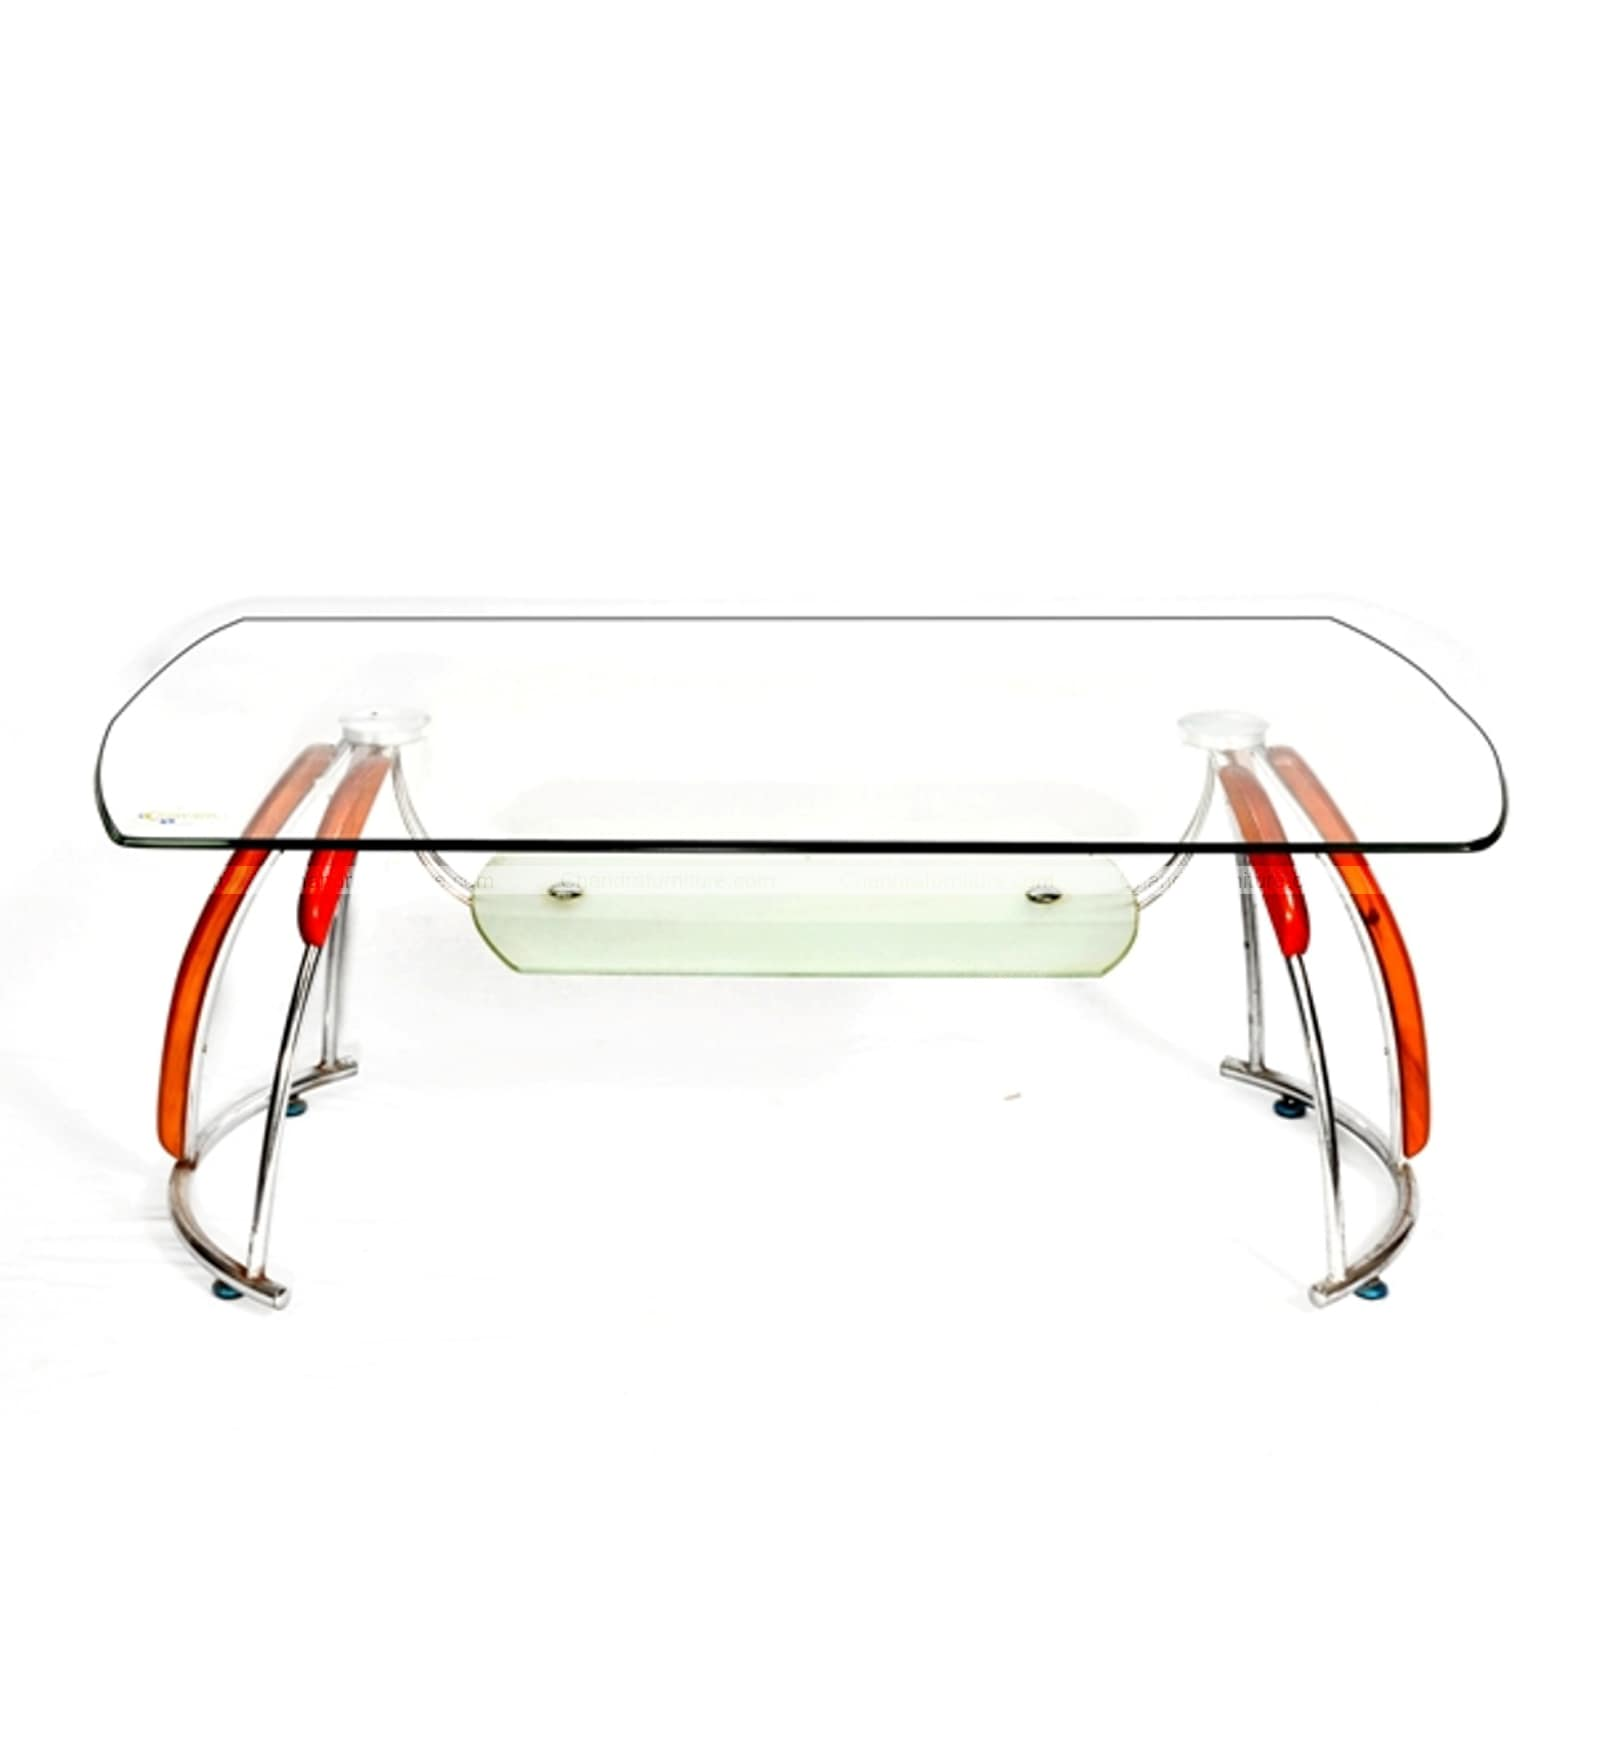 CHANDRA FURNITURE CENTER TABLE  CT-237#1